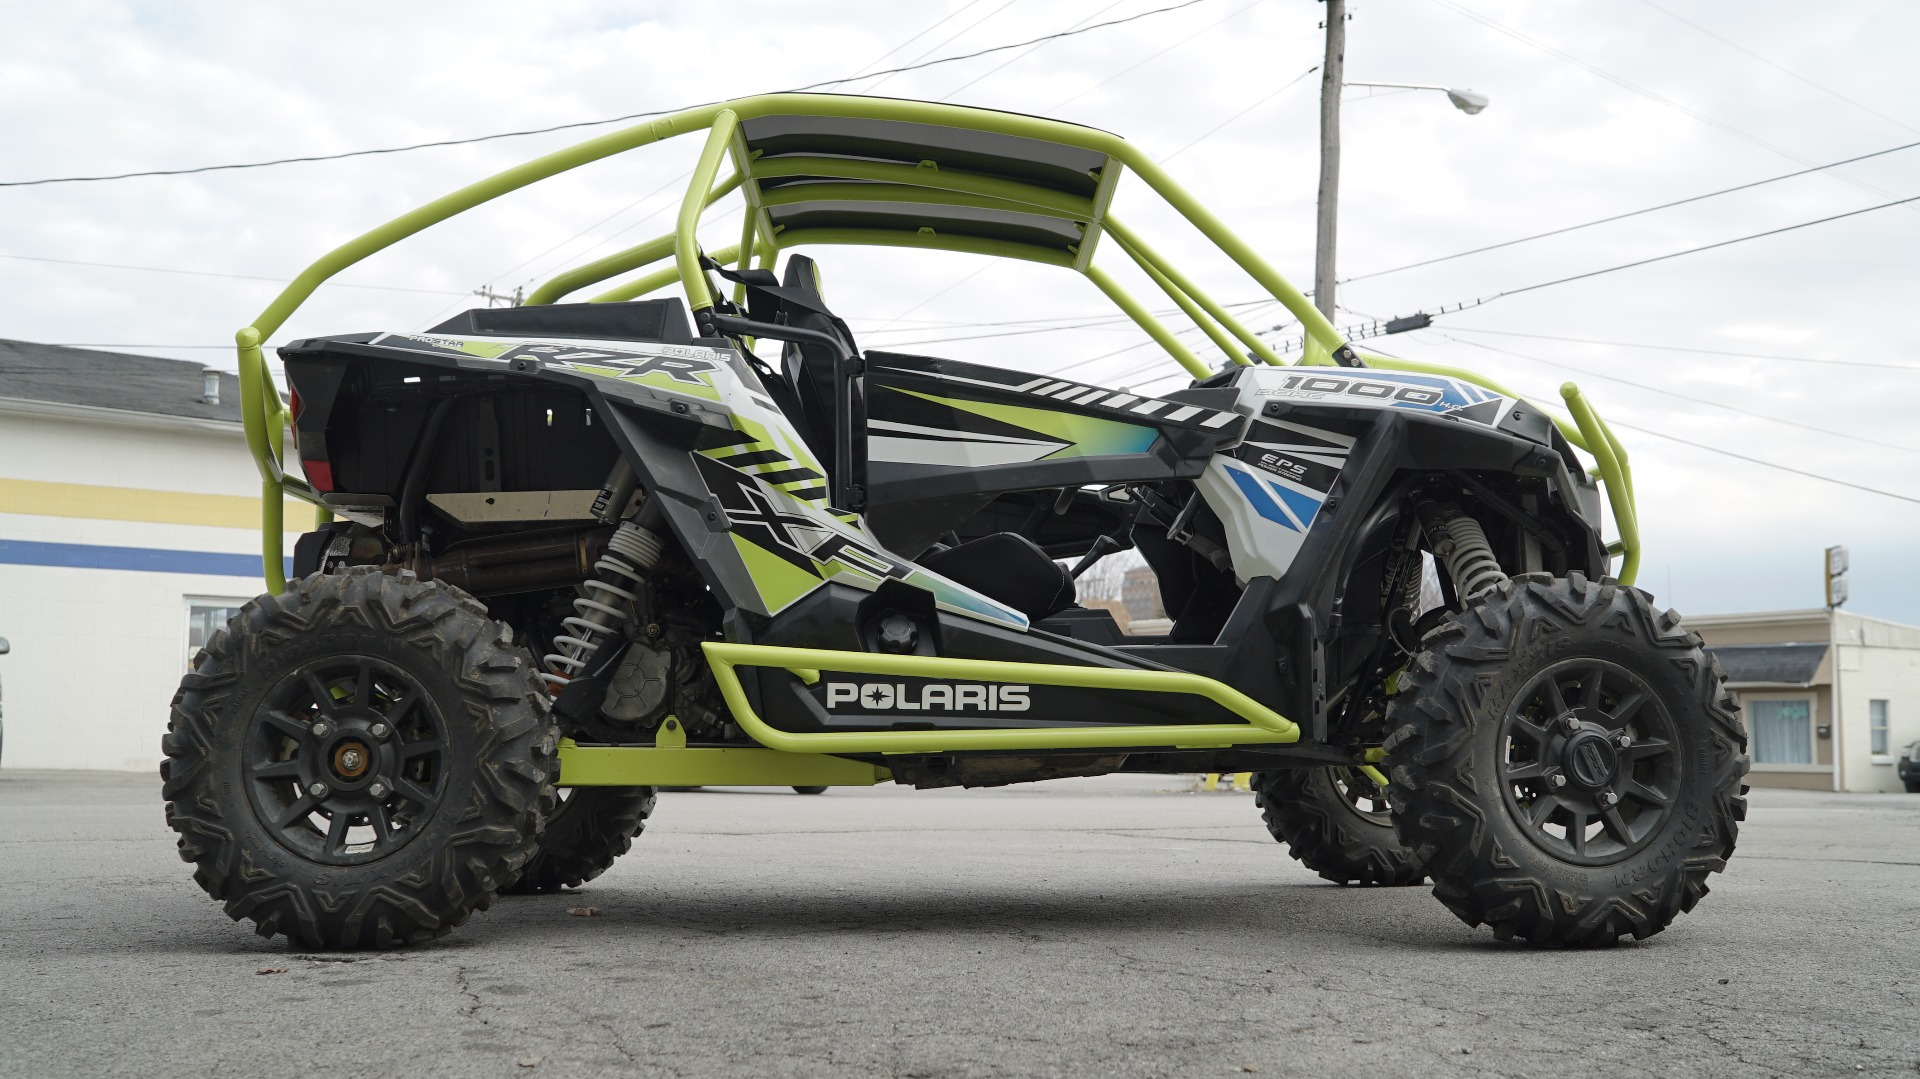 Polaris RZR 1000 with Yellow Roll Cage Image 11